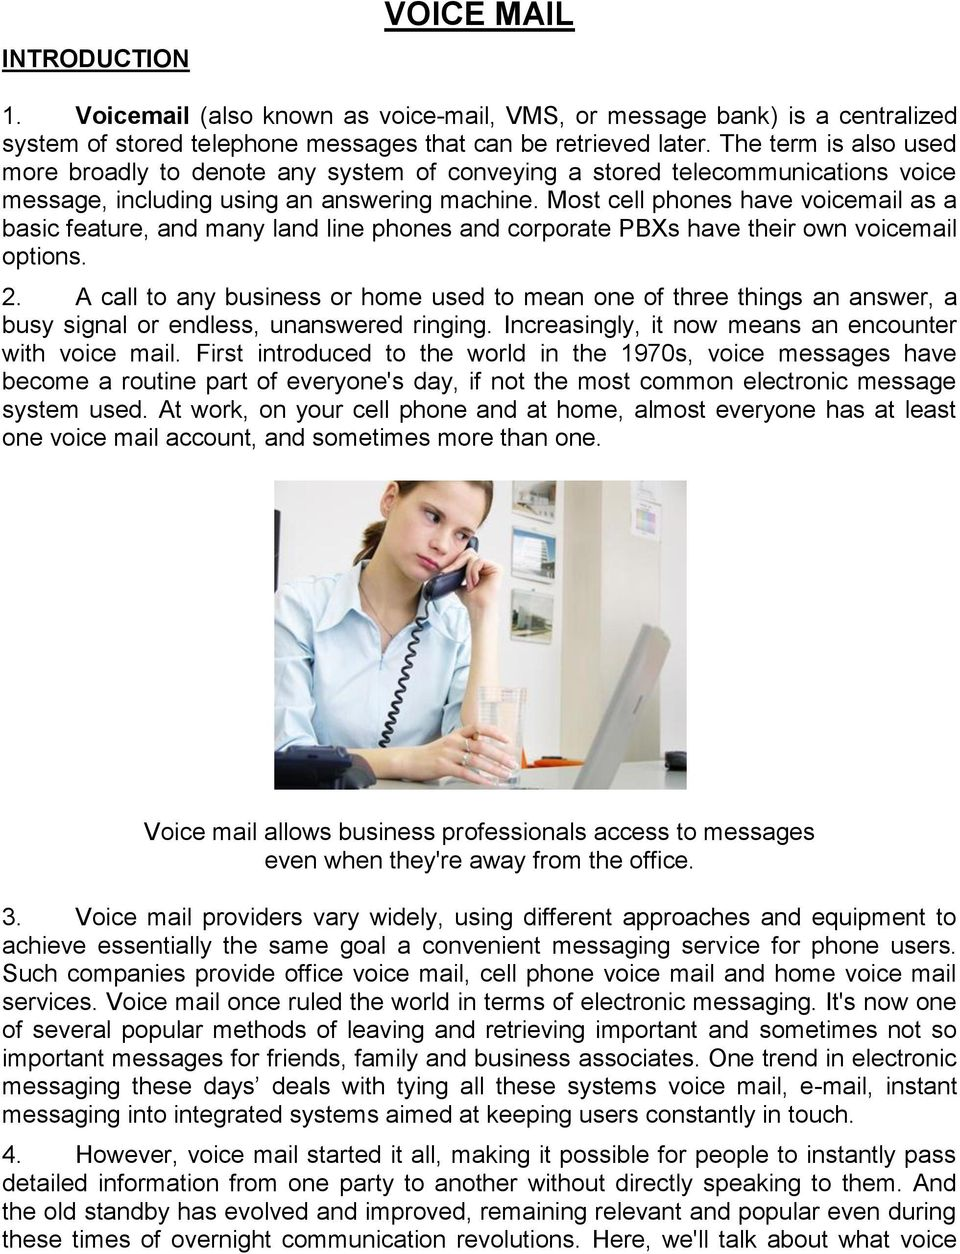 VOICE MAIL  Voice mail allows business professionals access